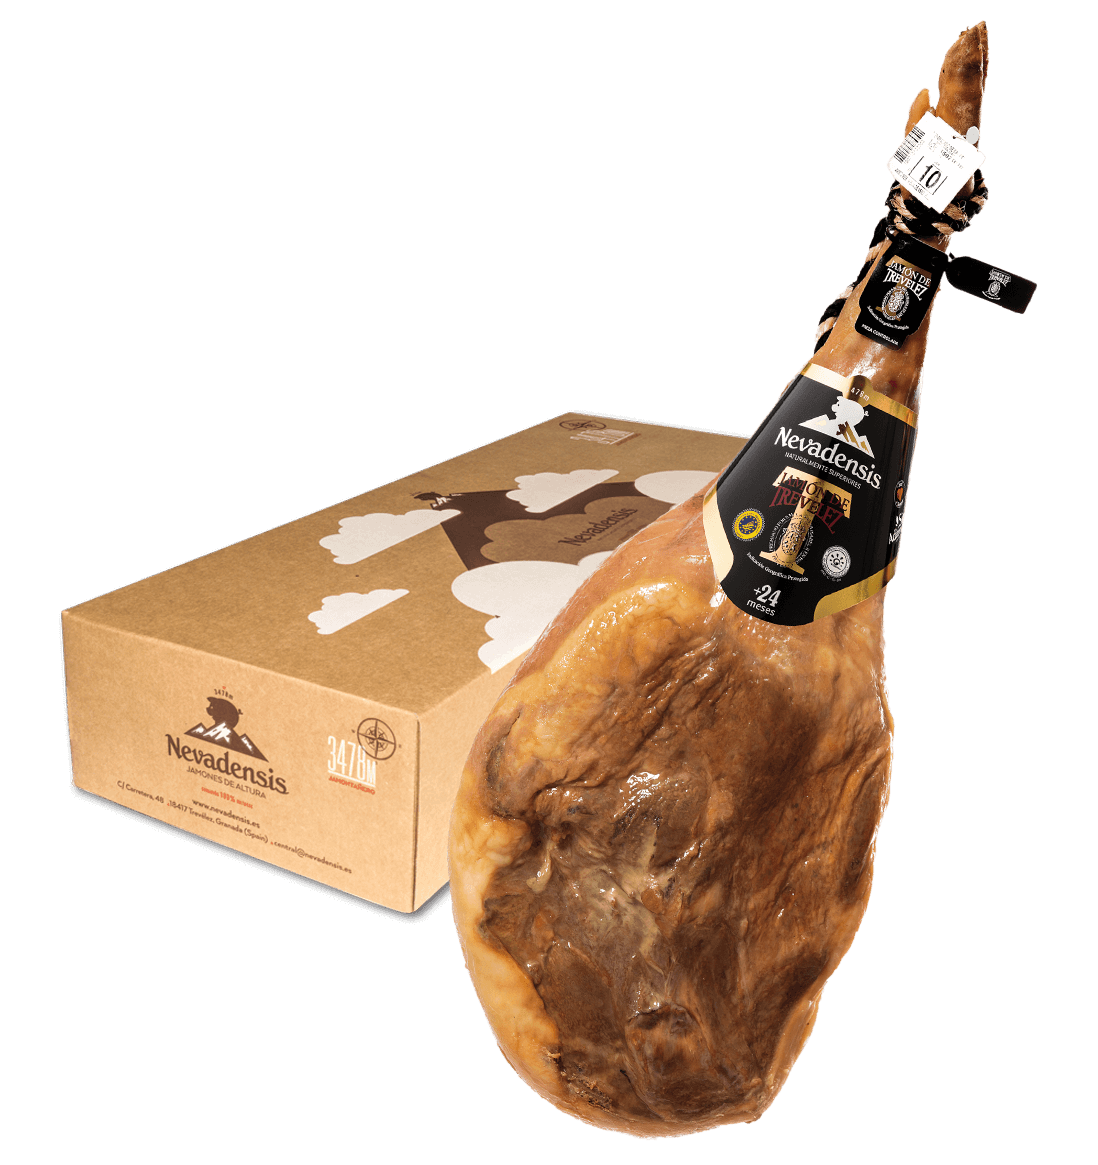 Box with a Serrano Ham from Trevélez, Alpujarra, Spain